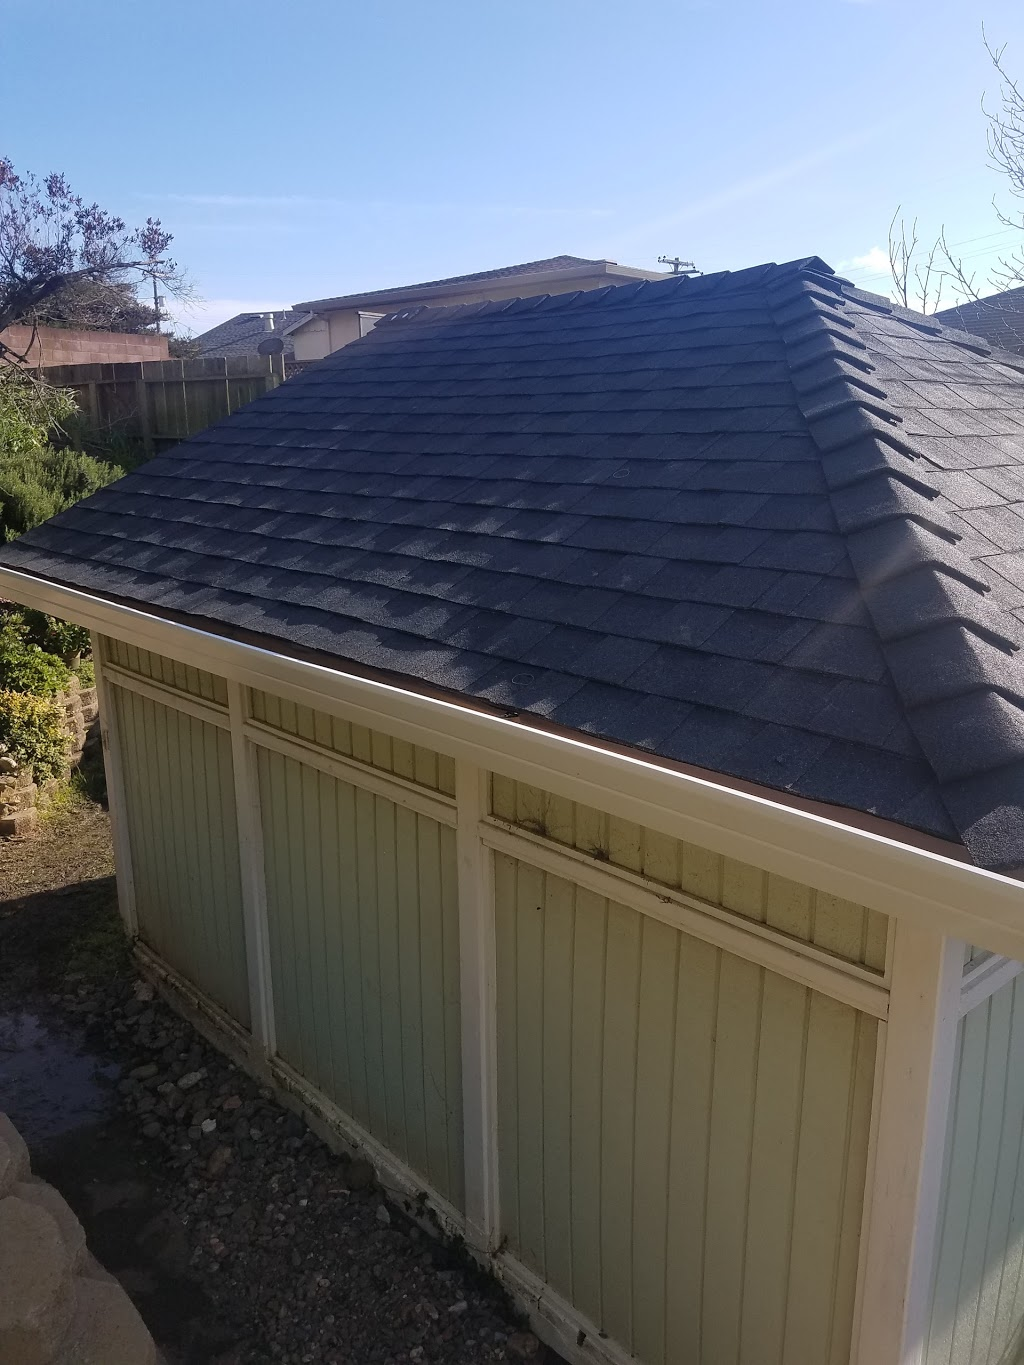 Mike McCurdy Roofing Inc. - roofing contractor  | Photo 5 of 10 | Address: 371 Shaw Rd, South San Francisco, CA 94080, USA | Phone: (650) 952-0233